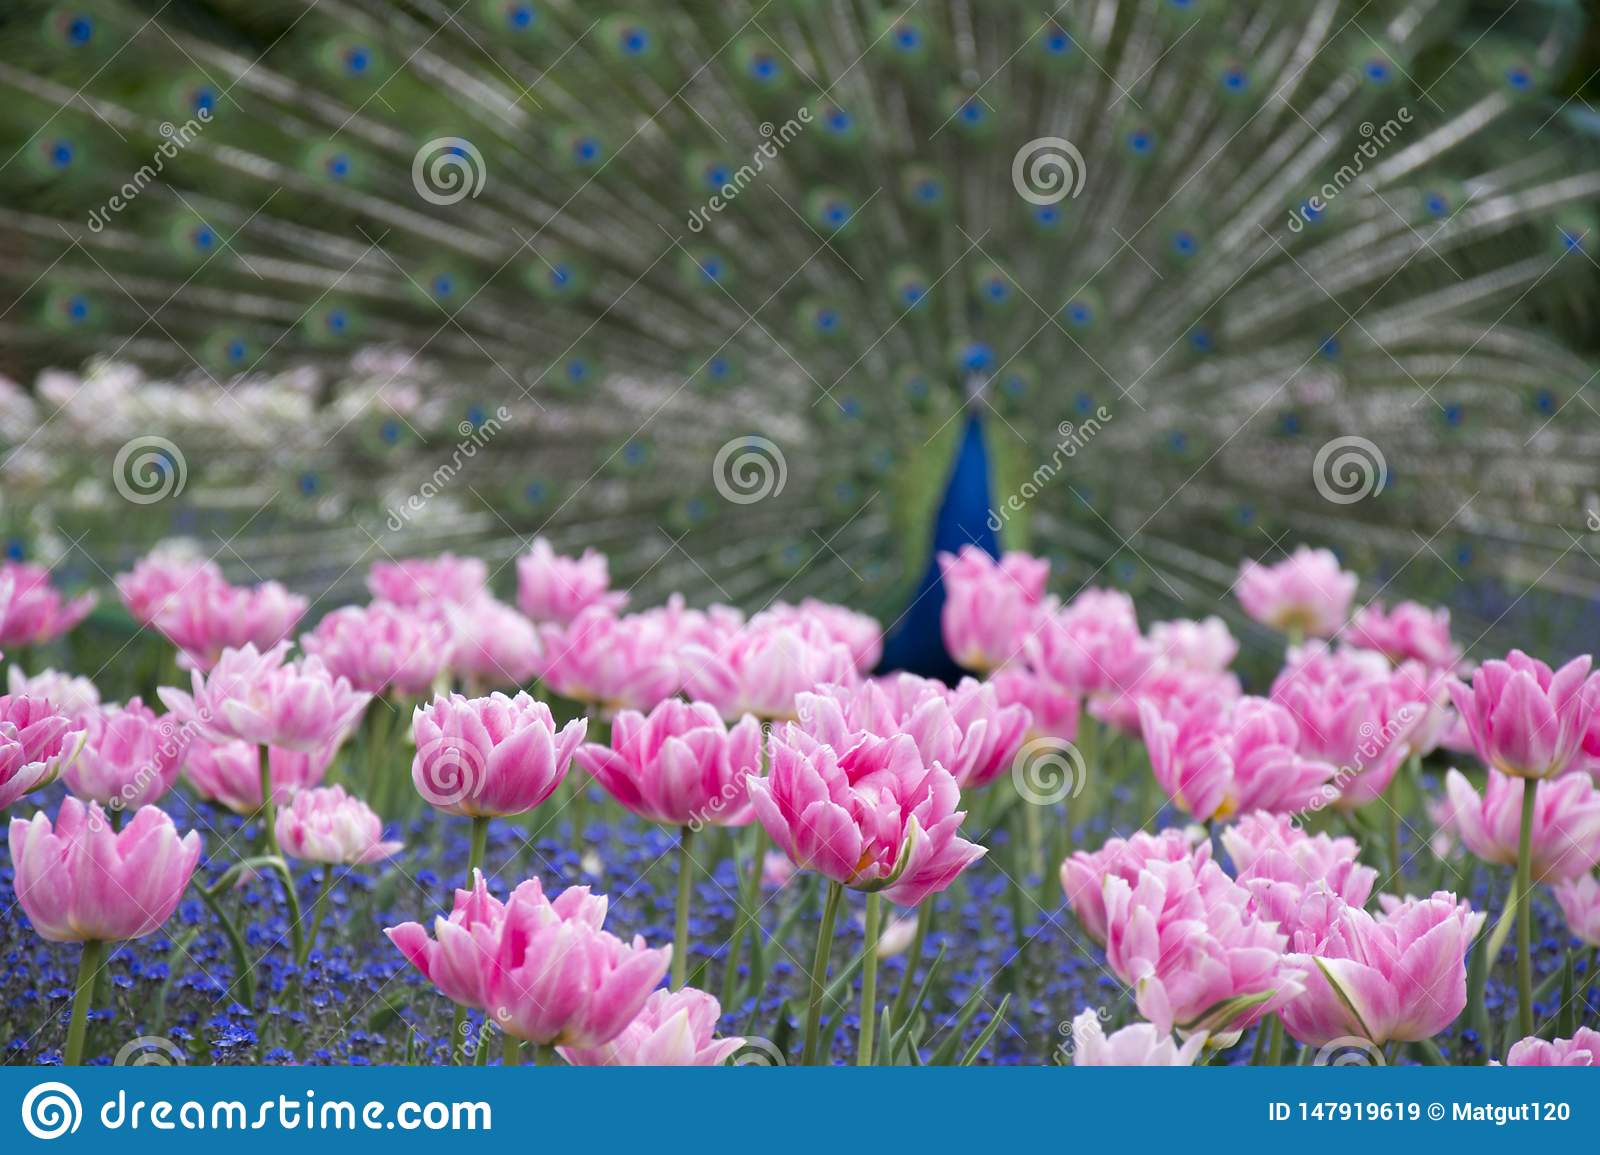 Photo of blured peacock with flowers